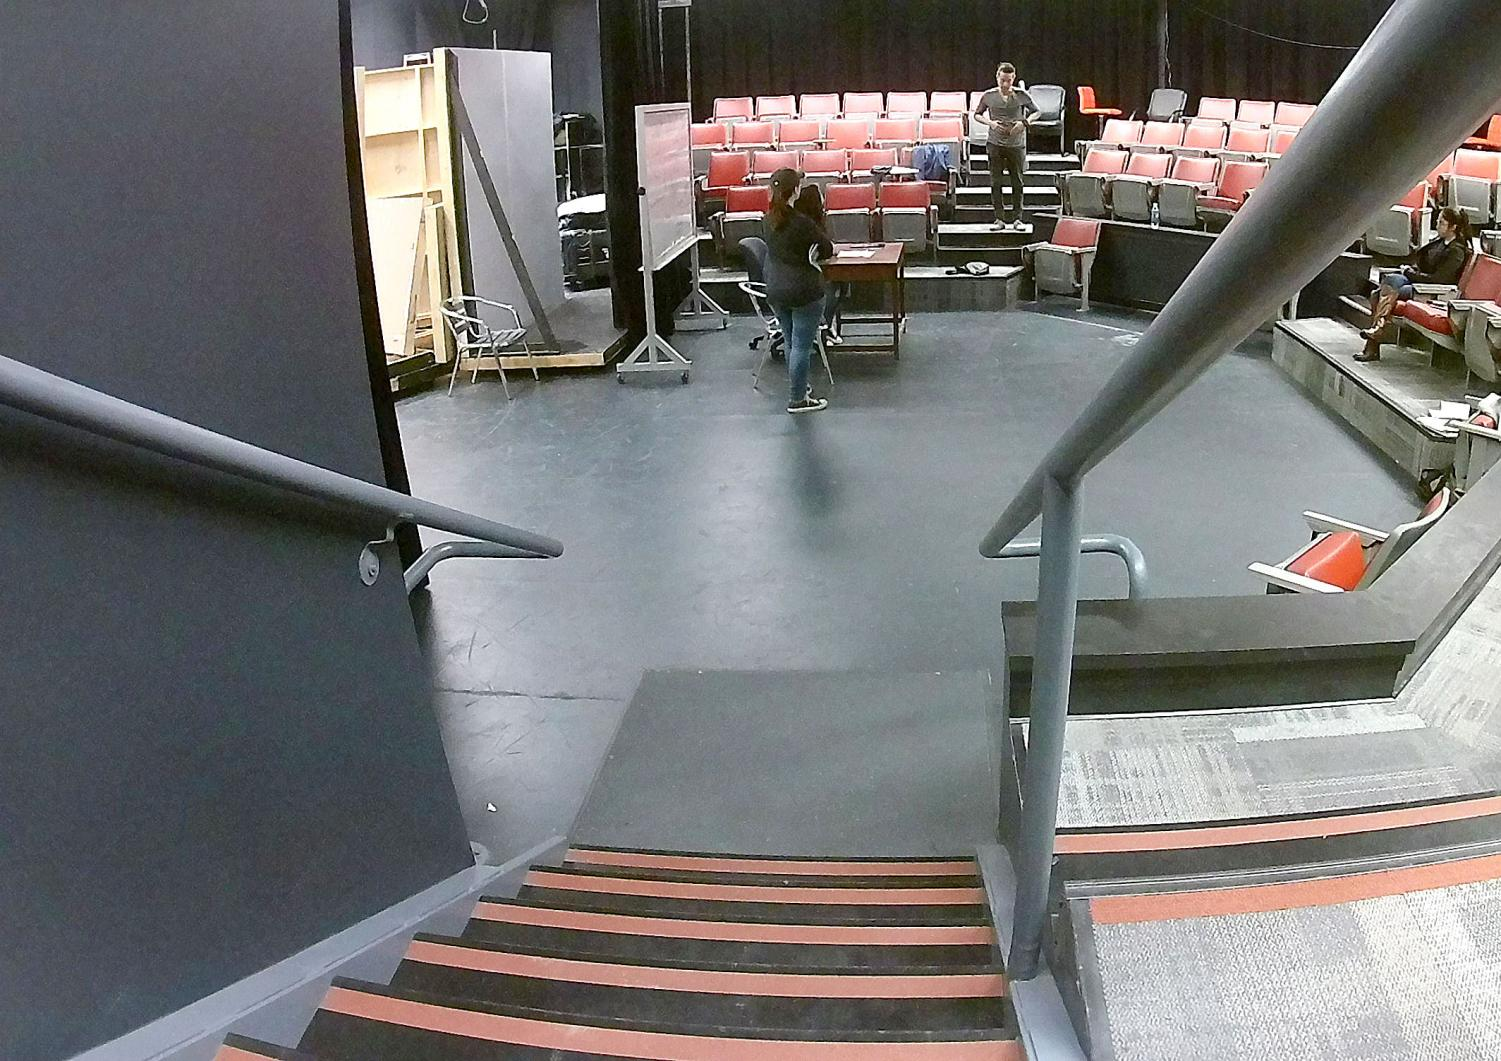 Students rehearse for the upcoming play